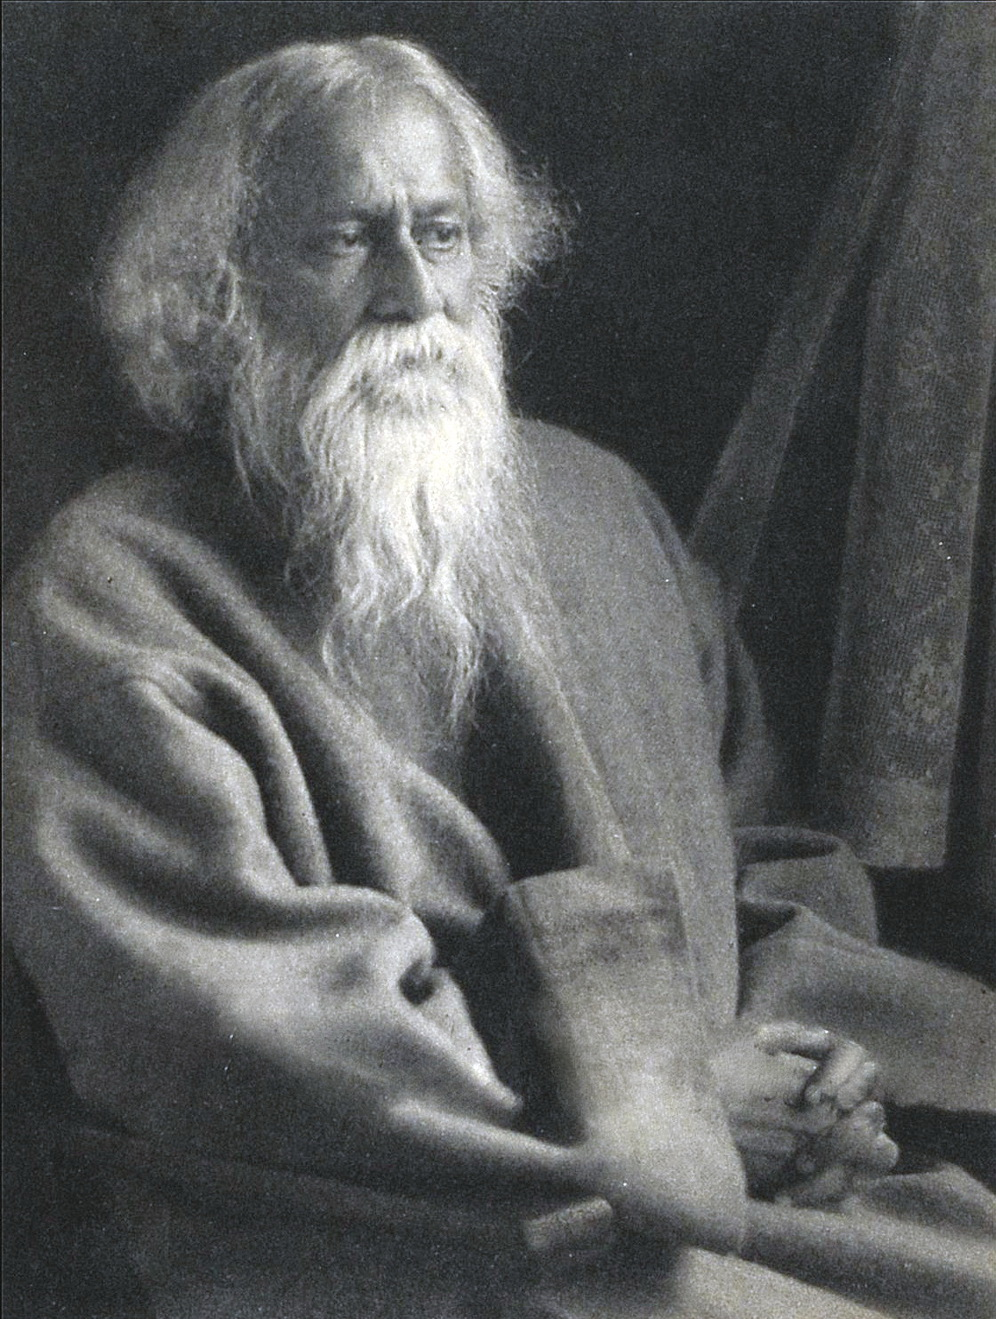 Rabindranath_Tagore_unknown_location.jpg (996×1319)